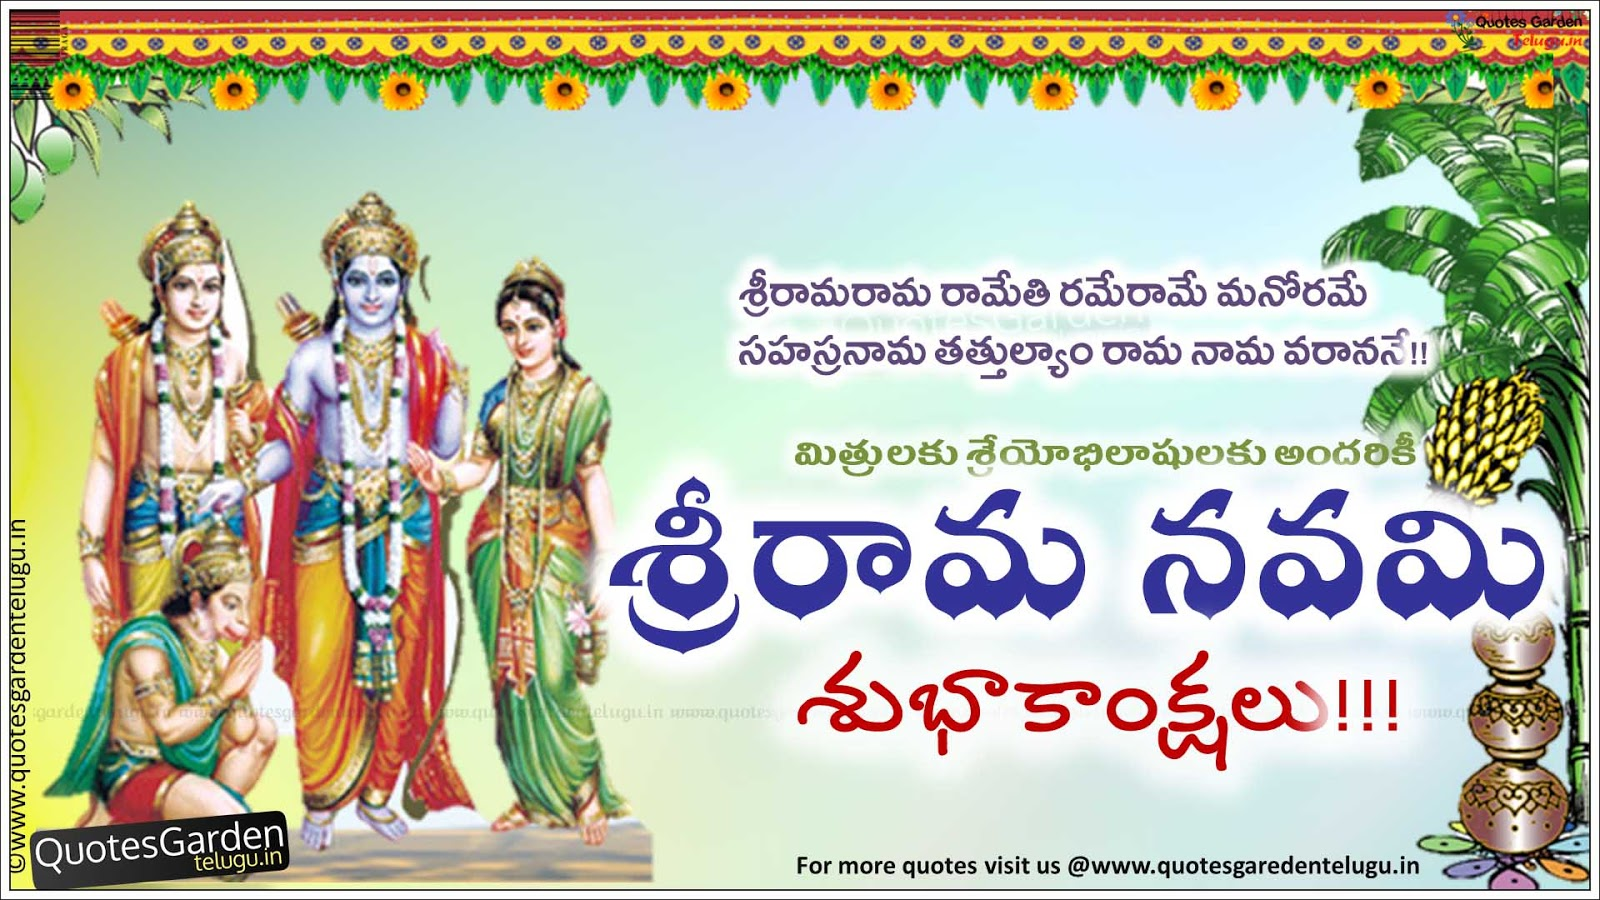 essay on sri rama navami Sri rama rajyam is a 2011 telugu epic devotional film, produced by yalamanchali sai babu under sri sai baba movies banner and directed by bapu starring nandamuri.